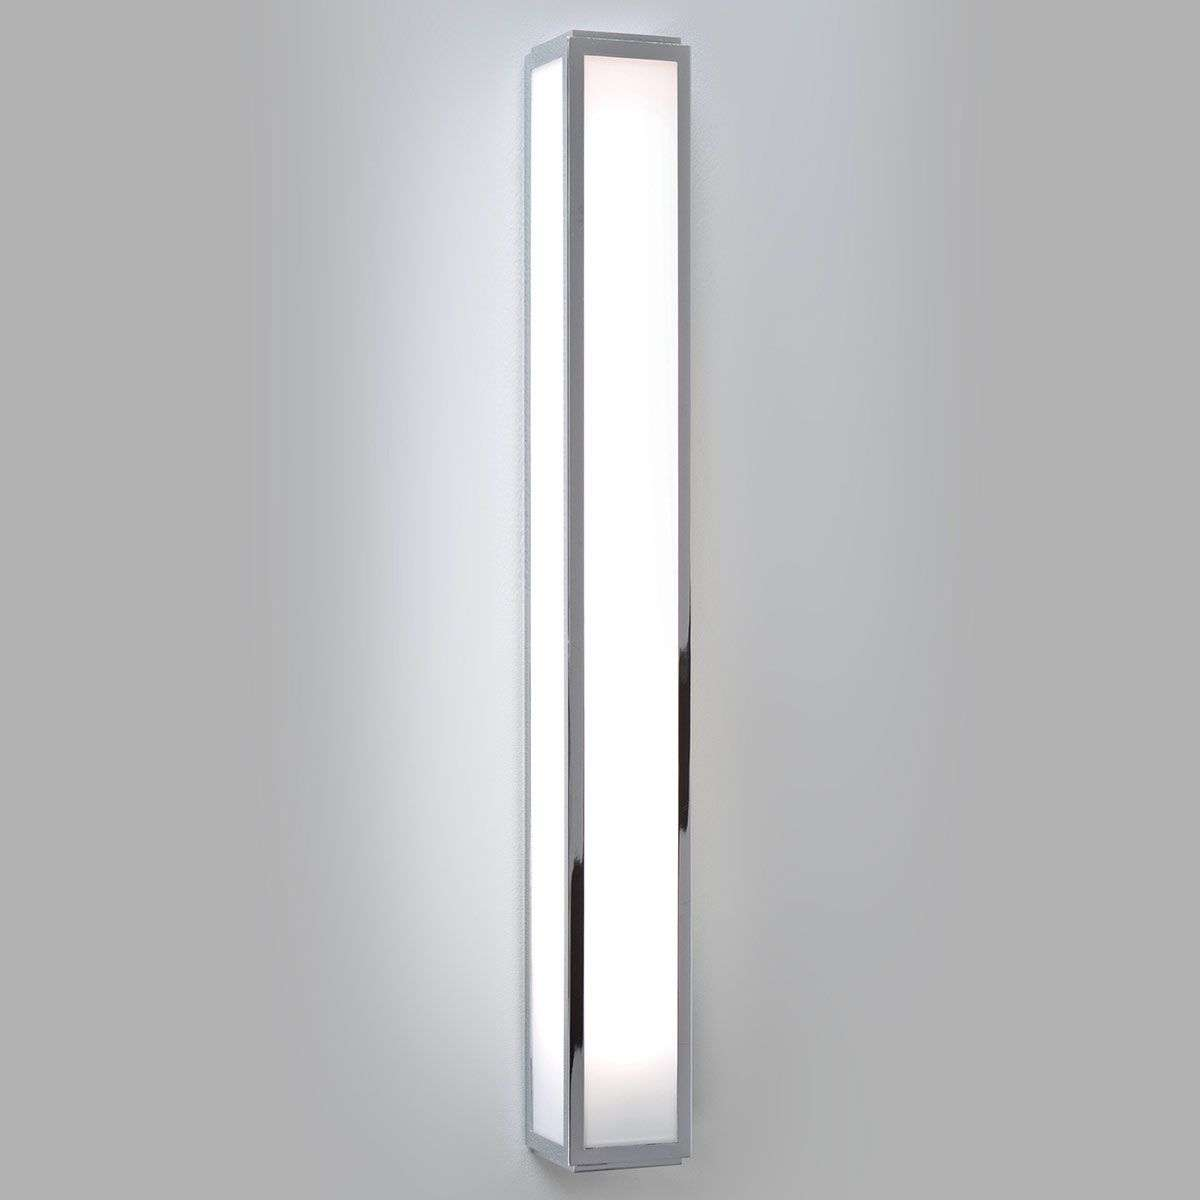 Lámpara de pared LED MASHIKO 600 LED-1020485-32